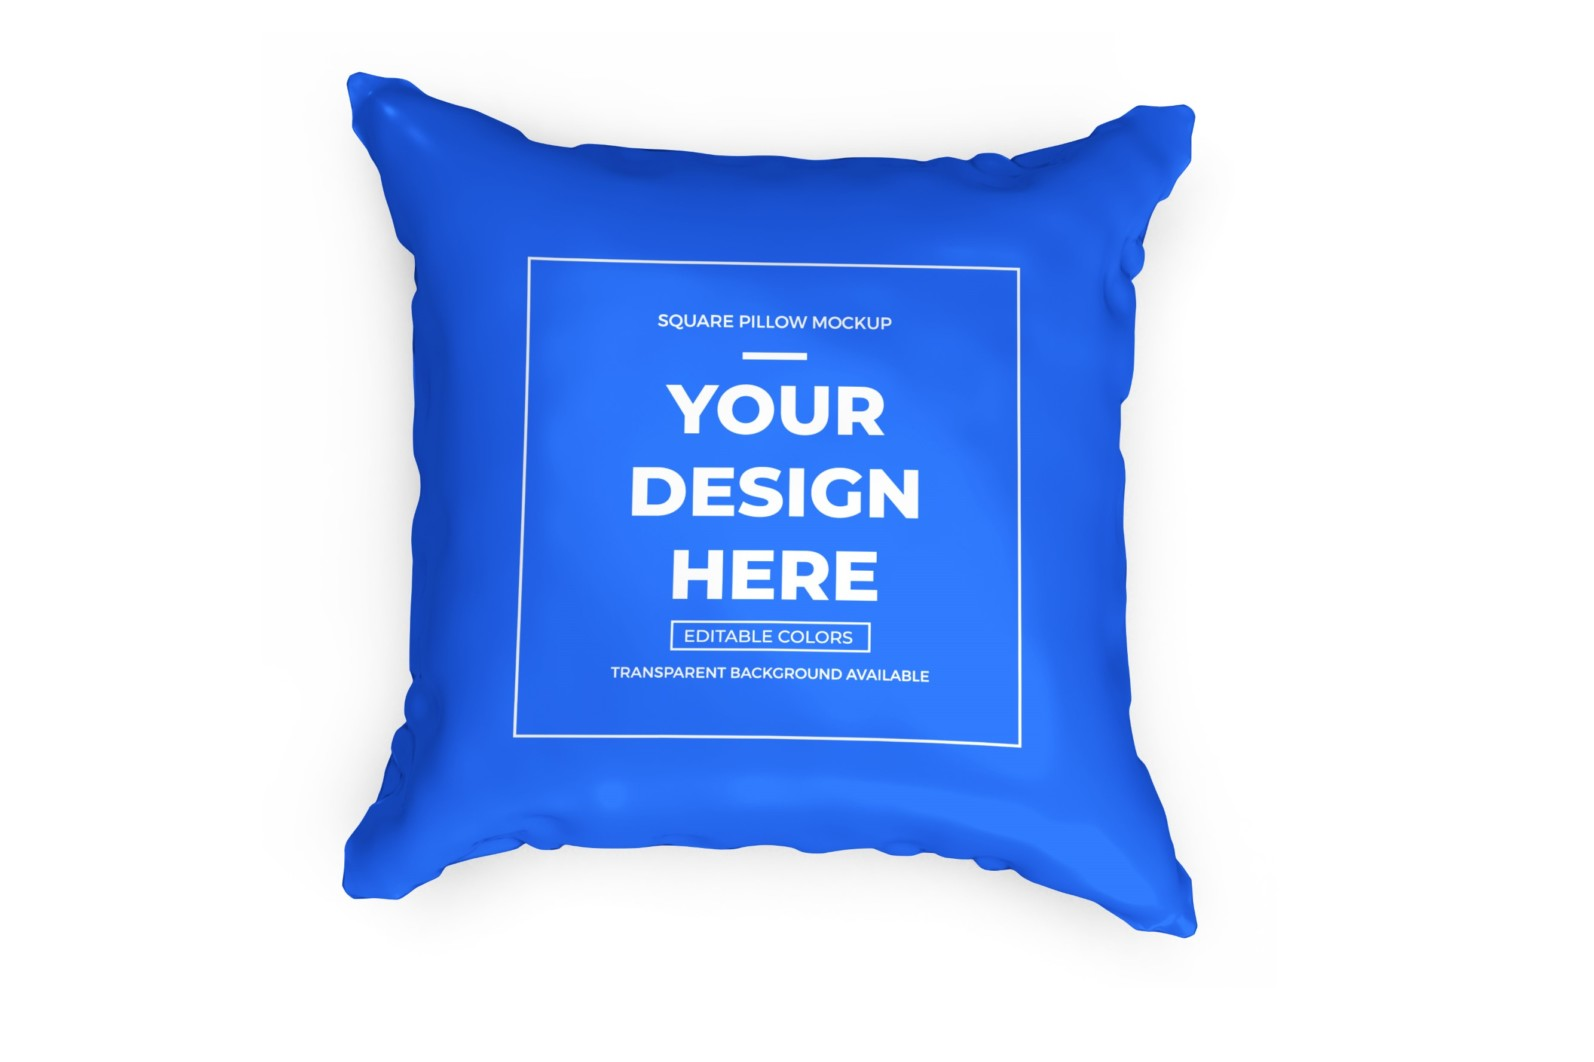 Square Pillow Mockup Template Bundle - 05 58 scaled -